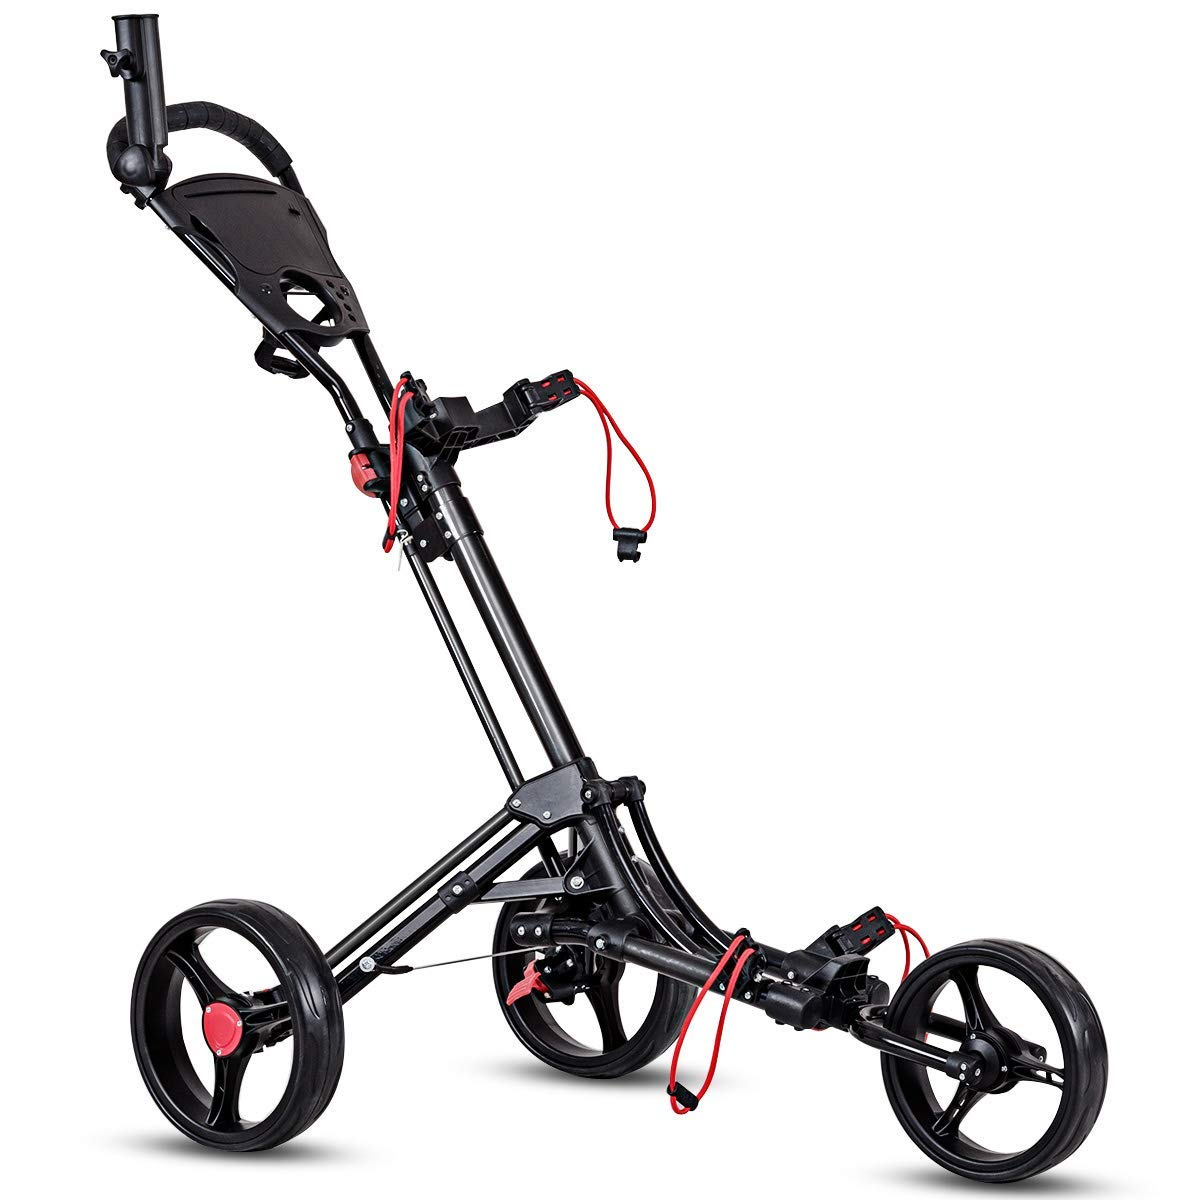 Tangkula Golf Push Cart 3 Wheels Foldable Hand Cart Easy Push and Pull Cart Trolley with Umbrella and Tee Holder, Quick Open and Close Golf Pull Cart by Tangkula